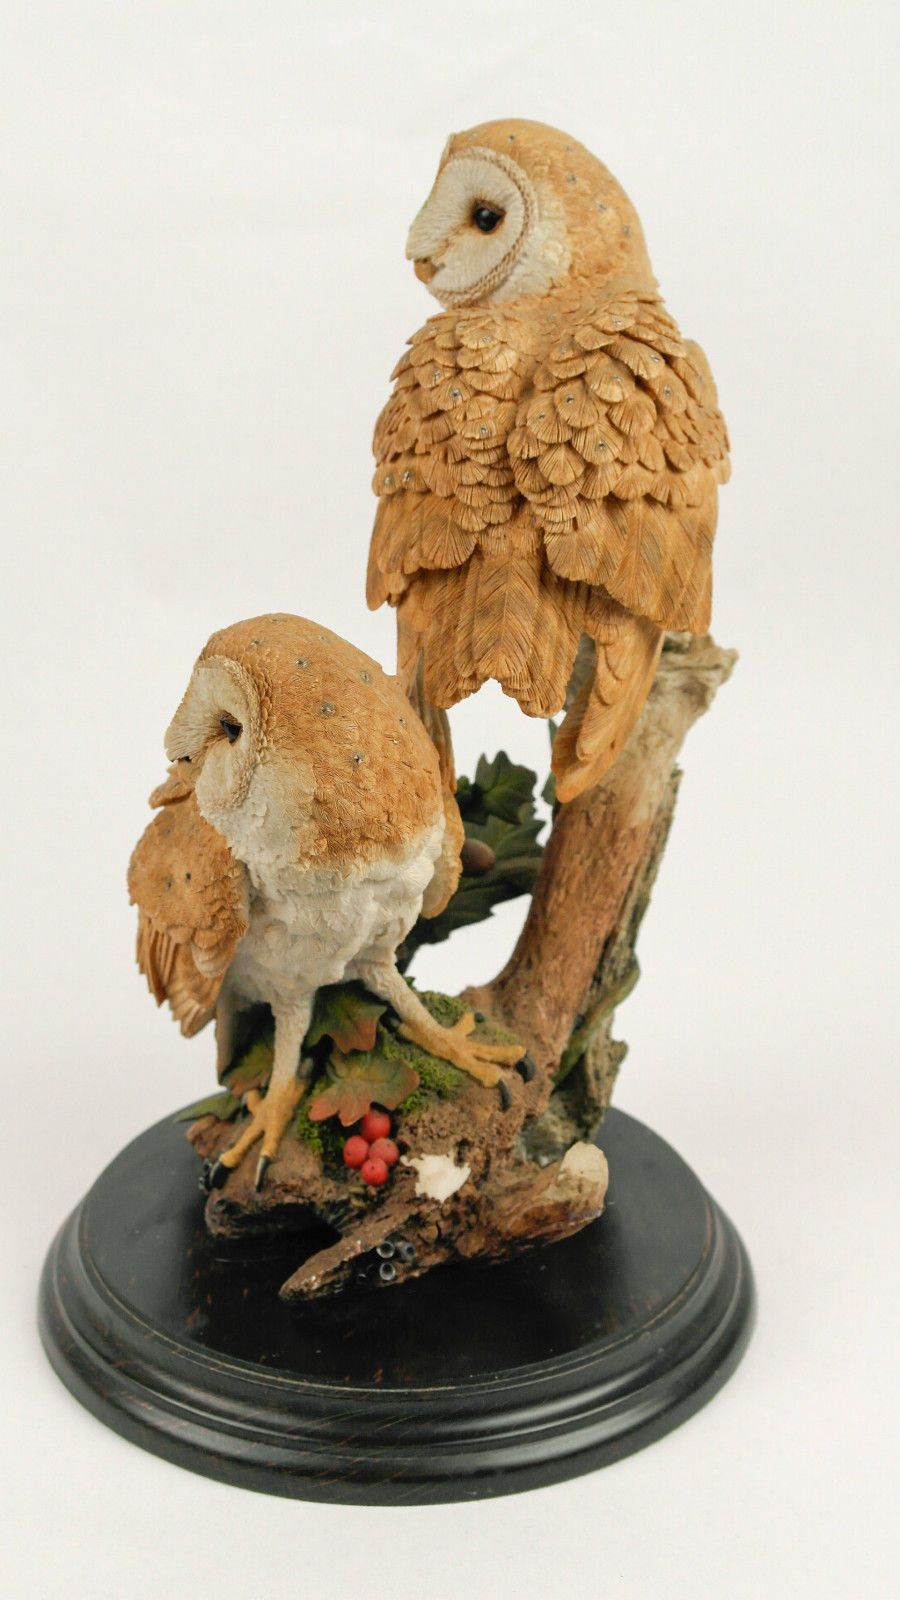 VINTAGE COUNTRY ARTISTS HAND CRAFTED FIGURINE BARN OWL